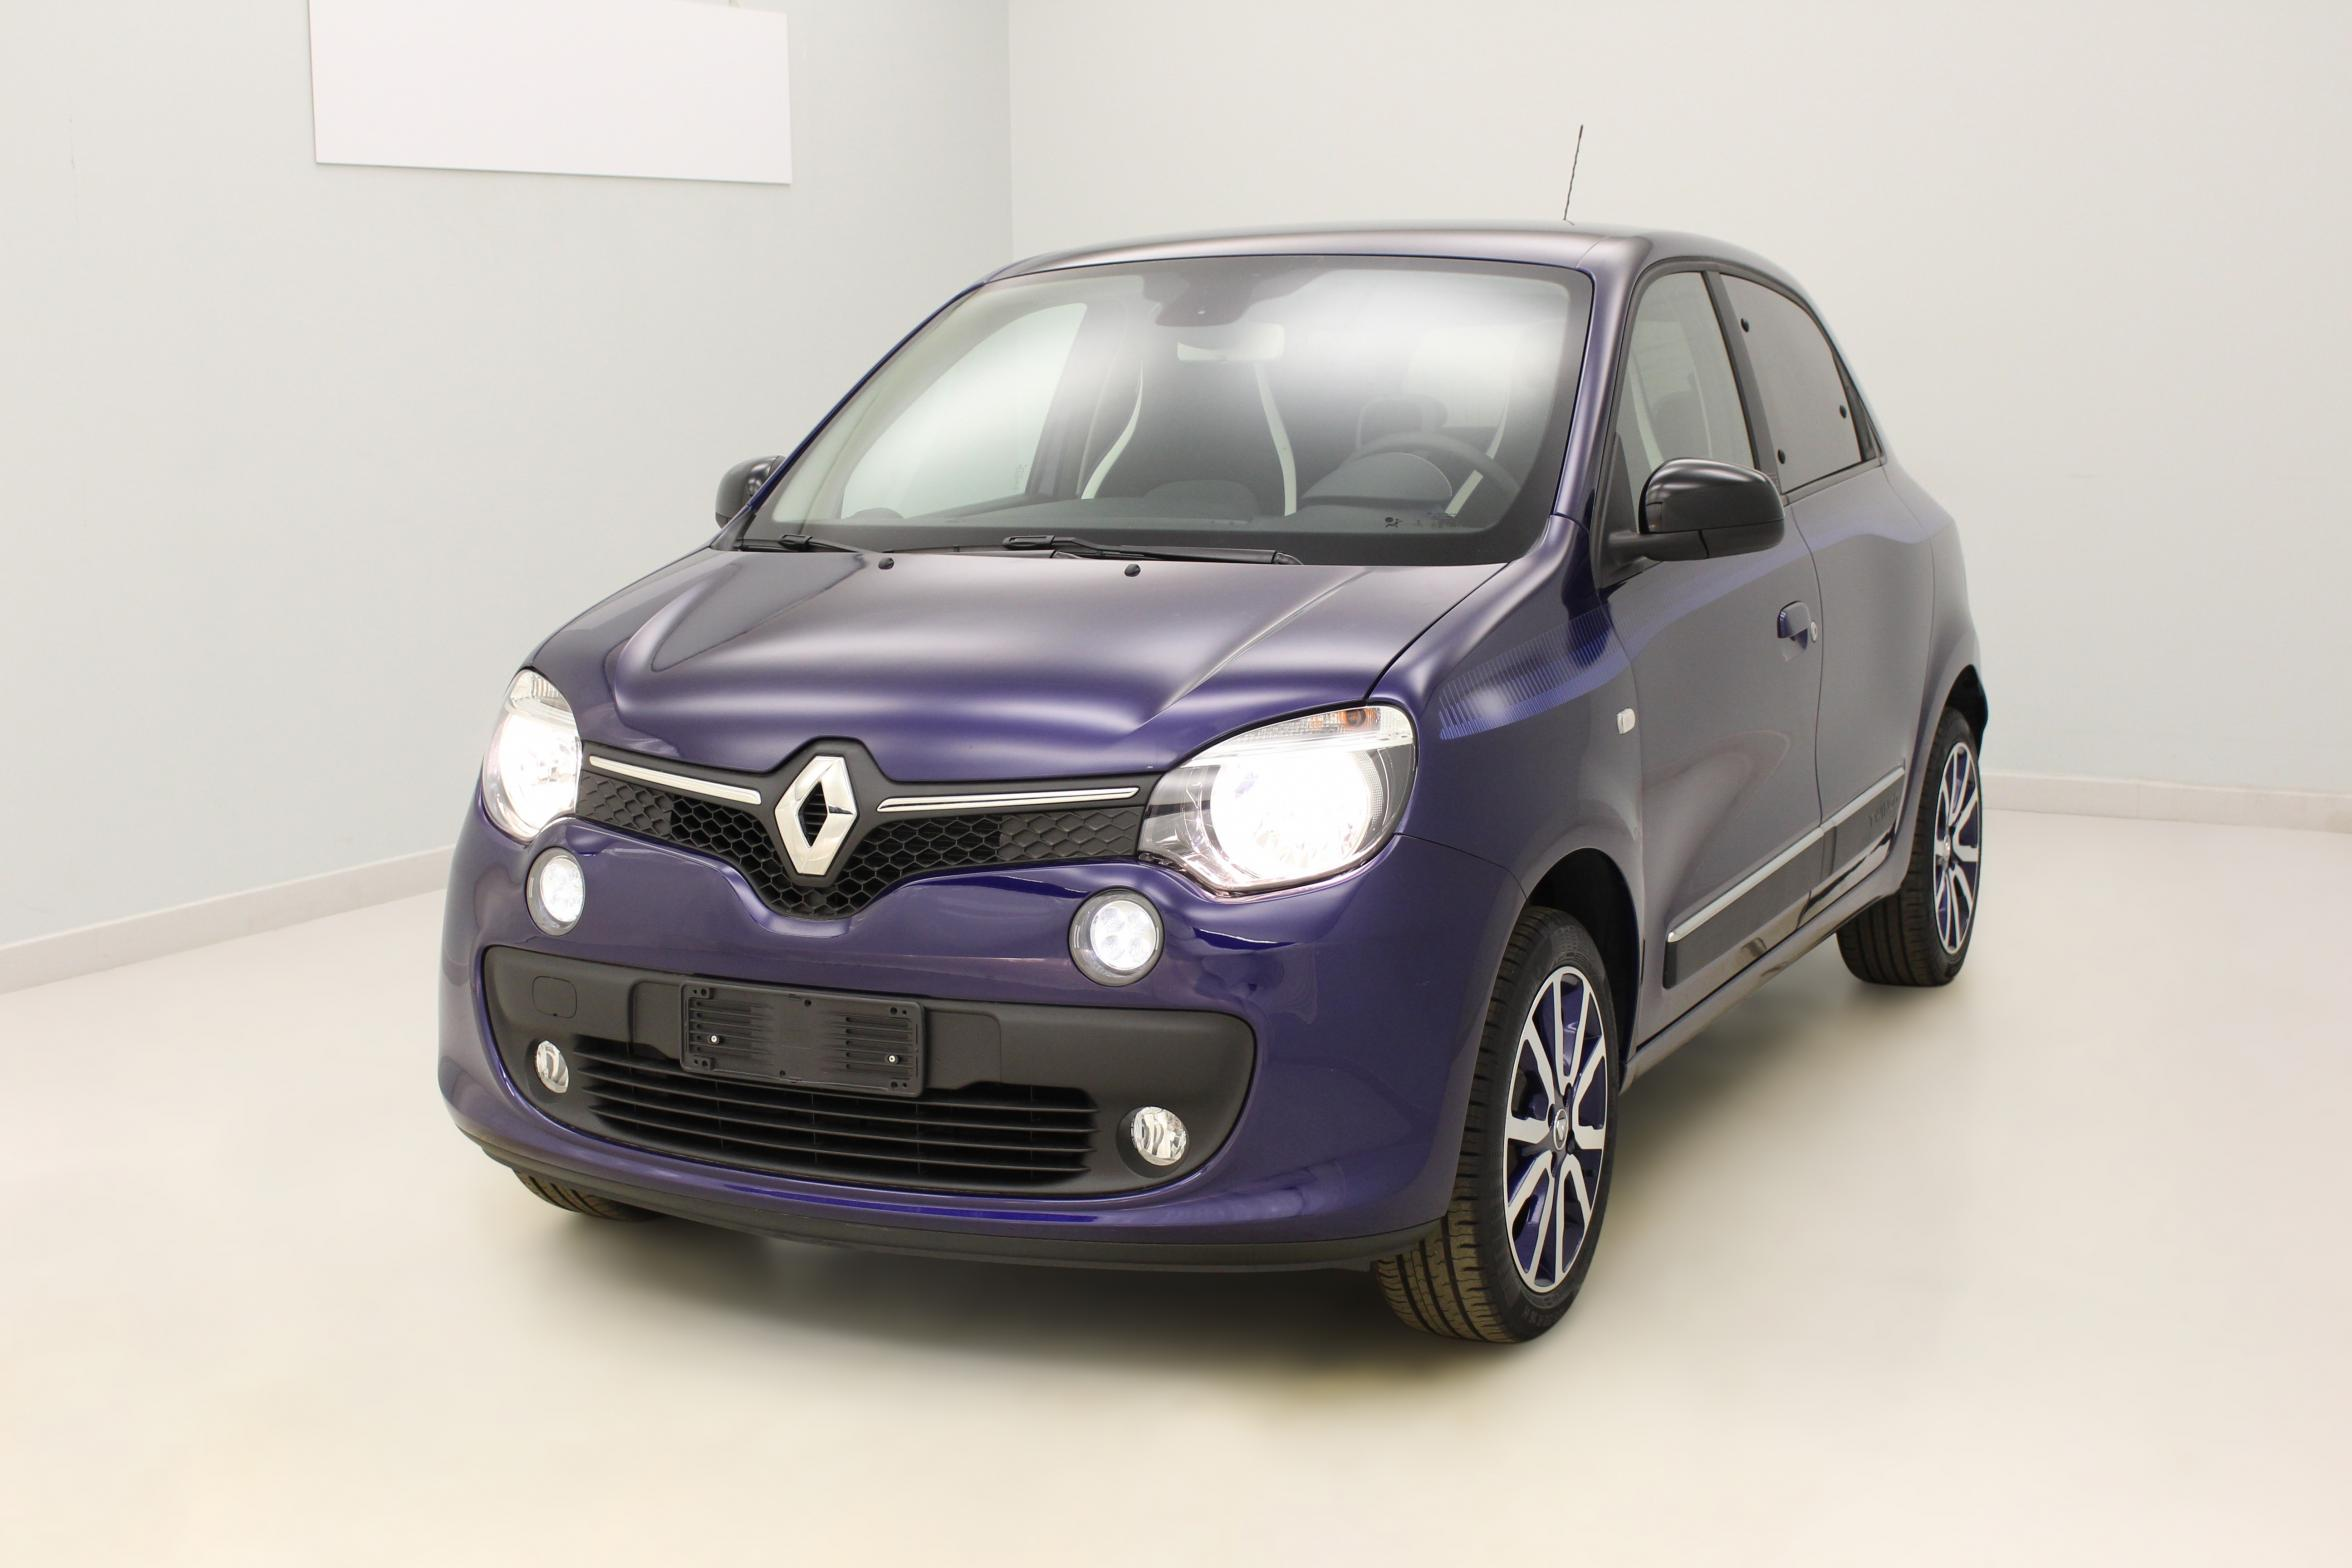 renault twingo 1 0 sce 70 eco2 stop start intens ultra violet v hicule d 39 occasion avec 160. Black Bedroom Furniture Sets. Home Design Ideas